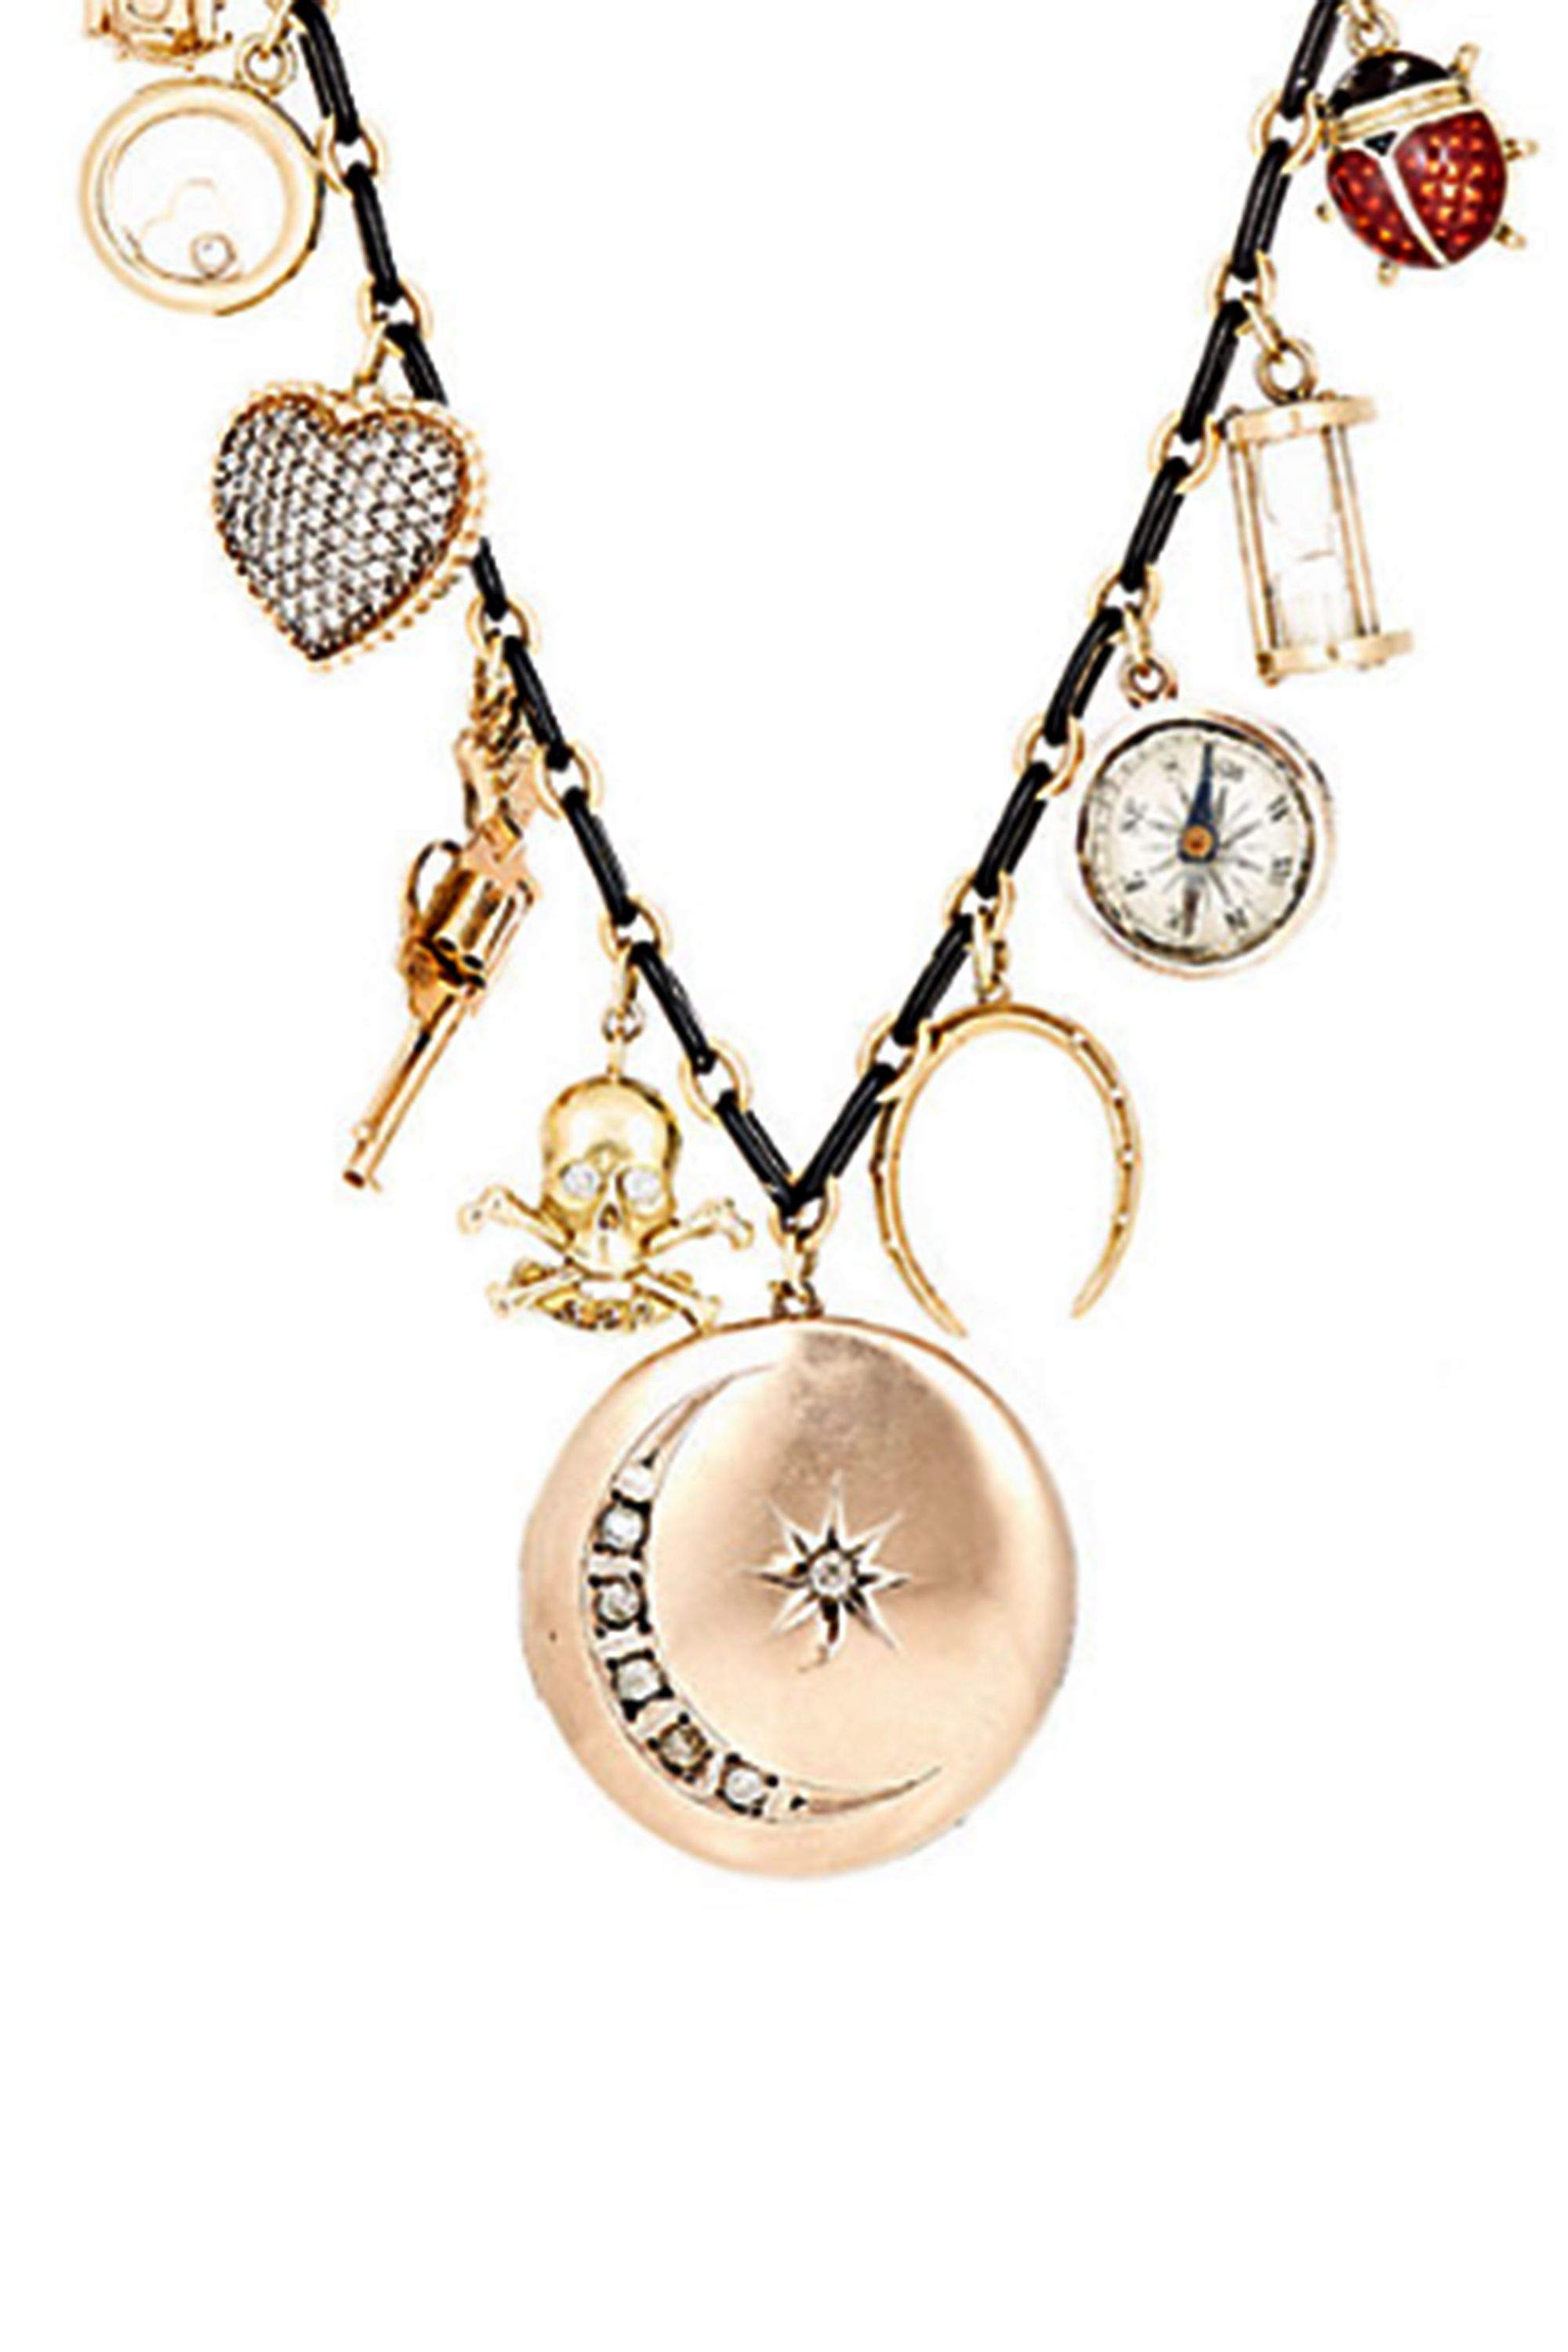 c personalized girls kp bbed lockets